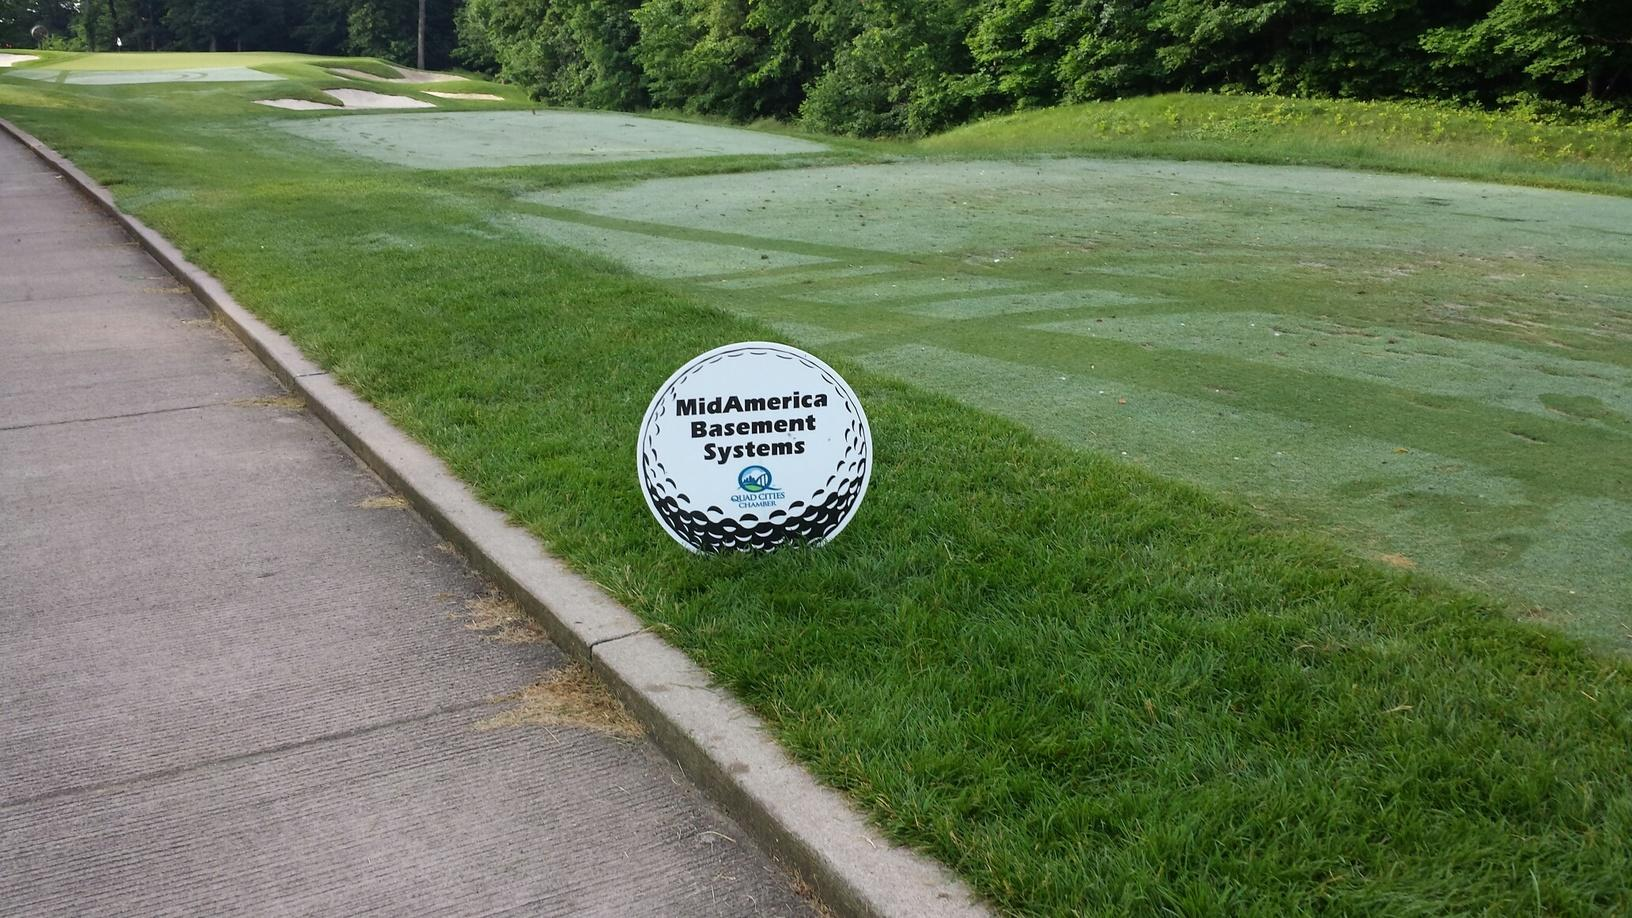 MidAmerica Basement Systems sponsorship sign for the 2014 Quad Cities Chamber annual golf outing.